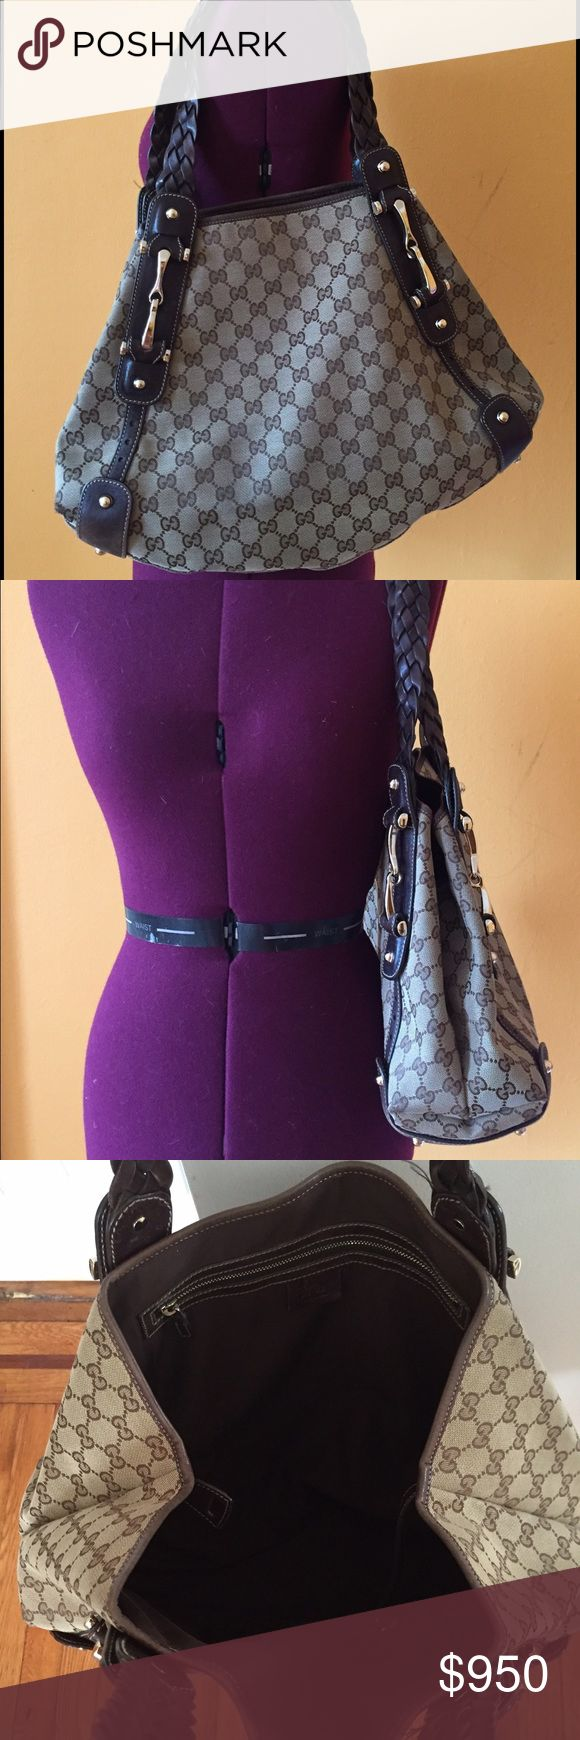 Gucci leather GG canvas  Pelham hobo shoulder bag Pre-owned Gucci brown leather GG monogram canvas  Pelham hobo shoulder bag Gucci Bags Shoulder Bags